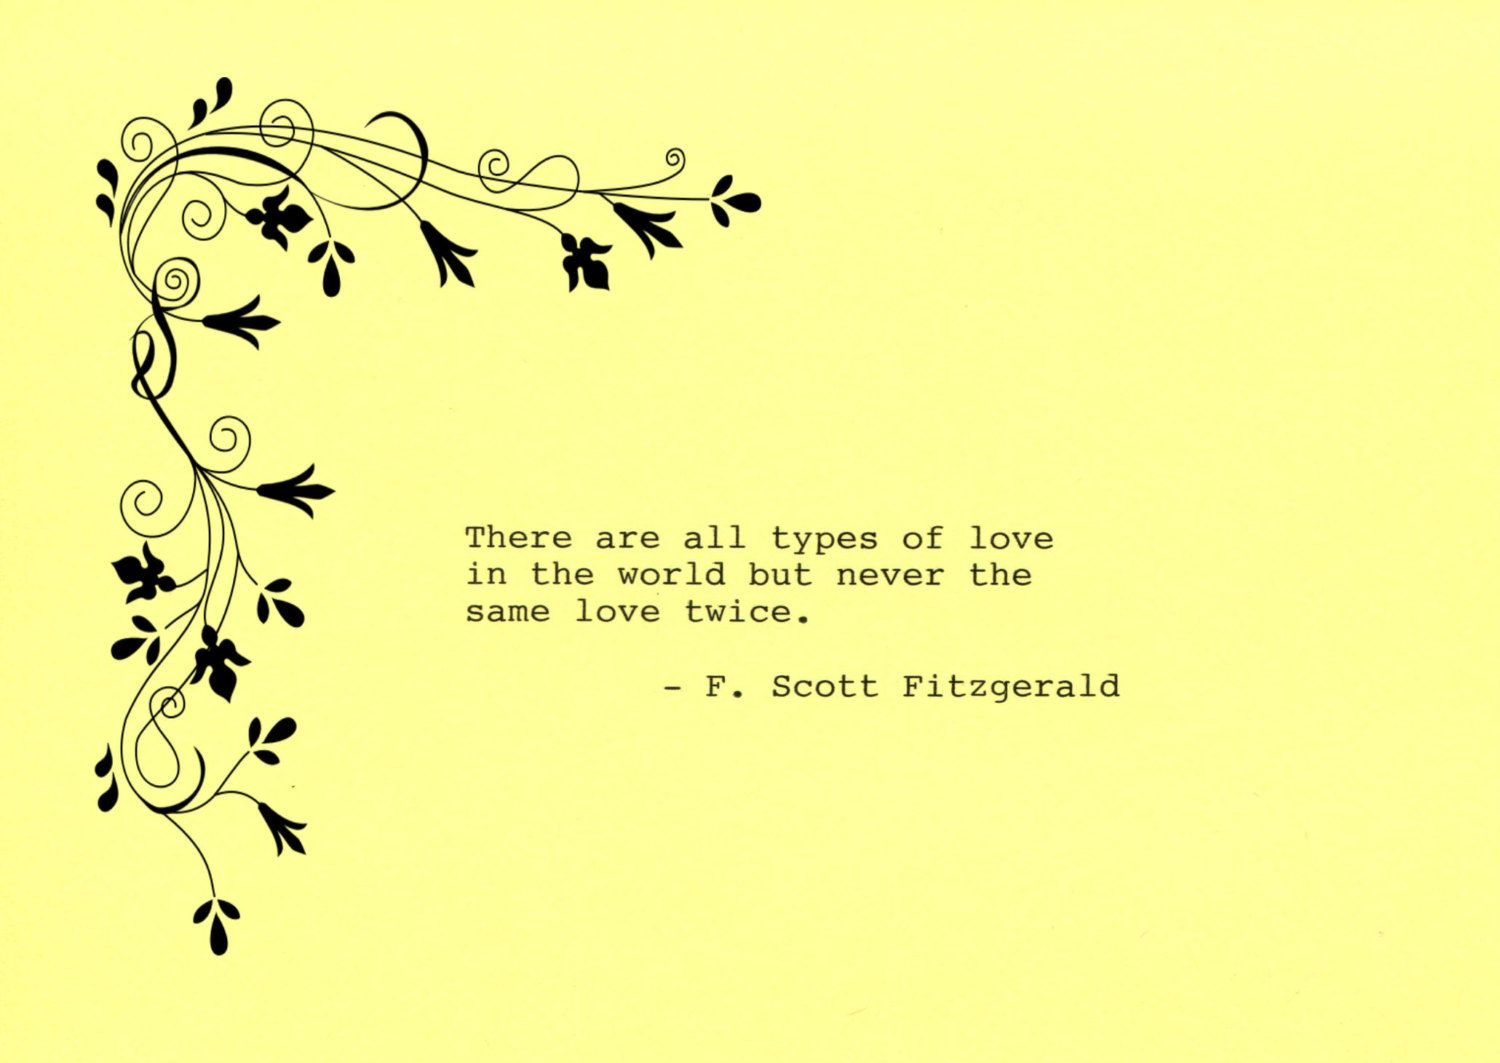 F. Scott Fitzgerald Quote Made on Typewriter Art Quote Wall Art ...